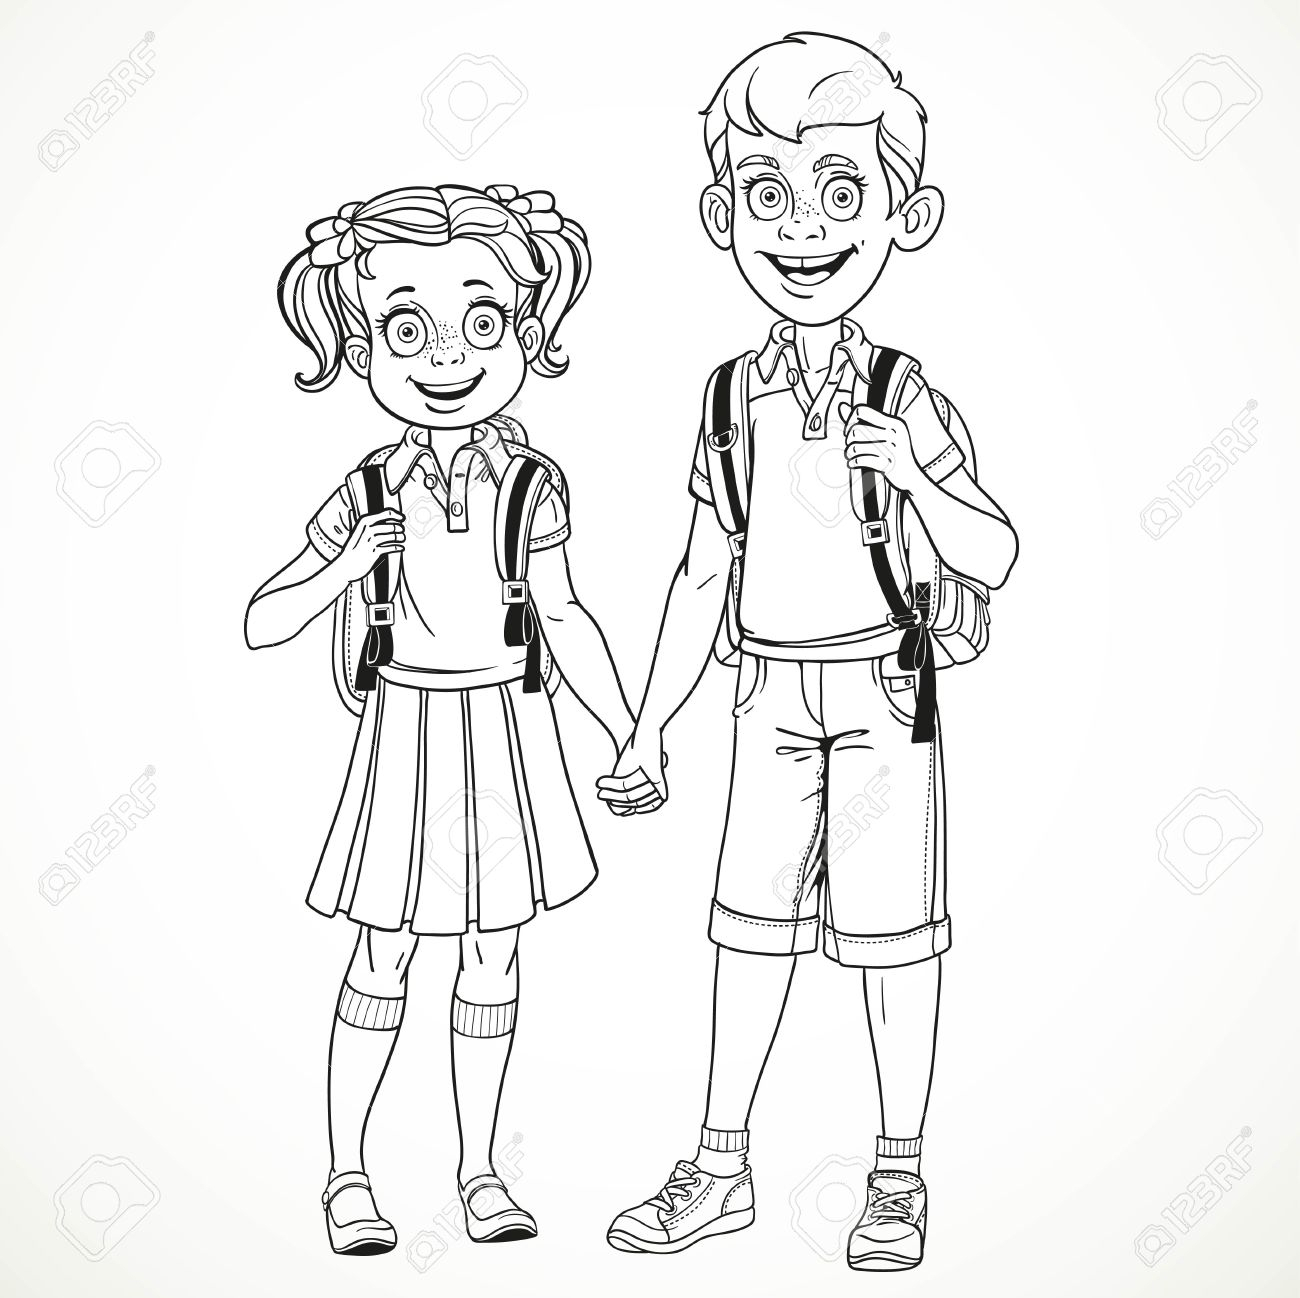 1300x1298 Drawings Of A Boy N Girl Boy And Girl With A School Bag Holding